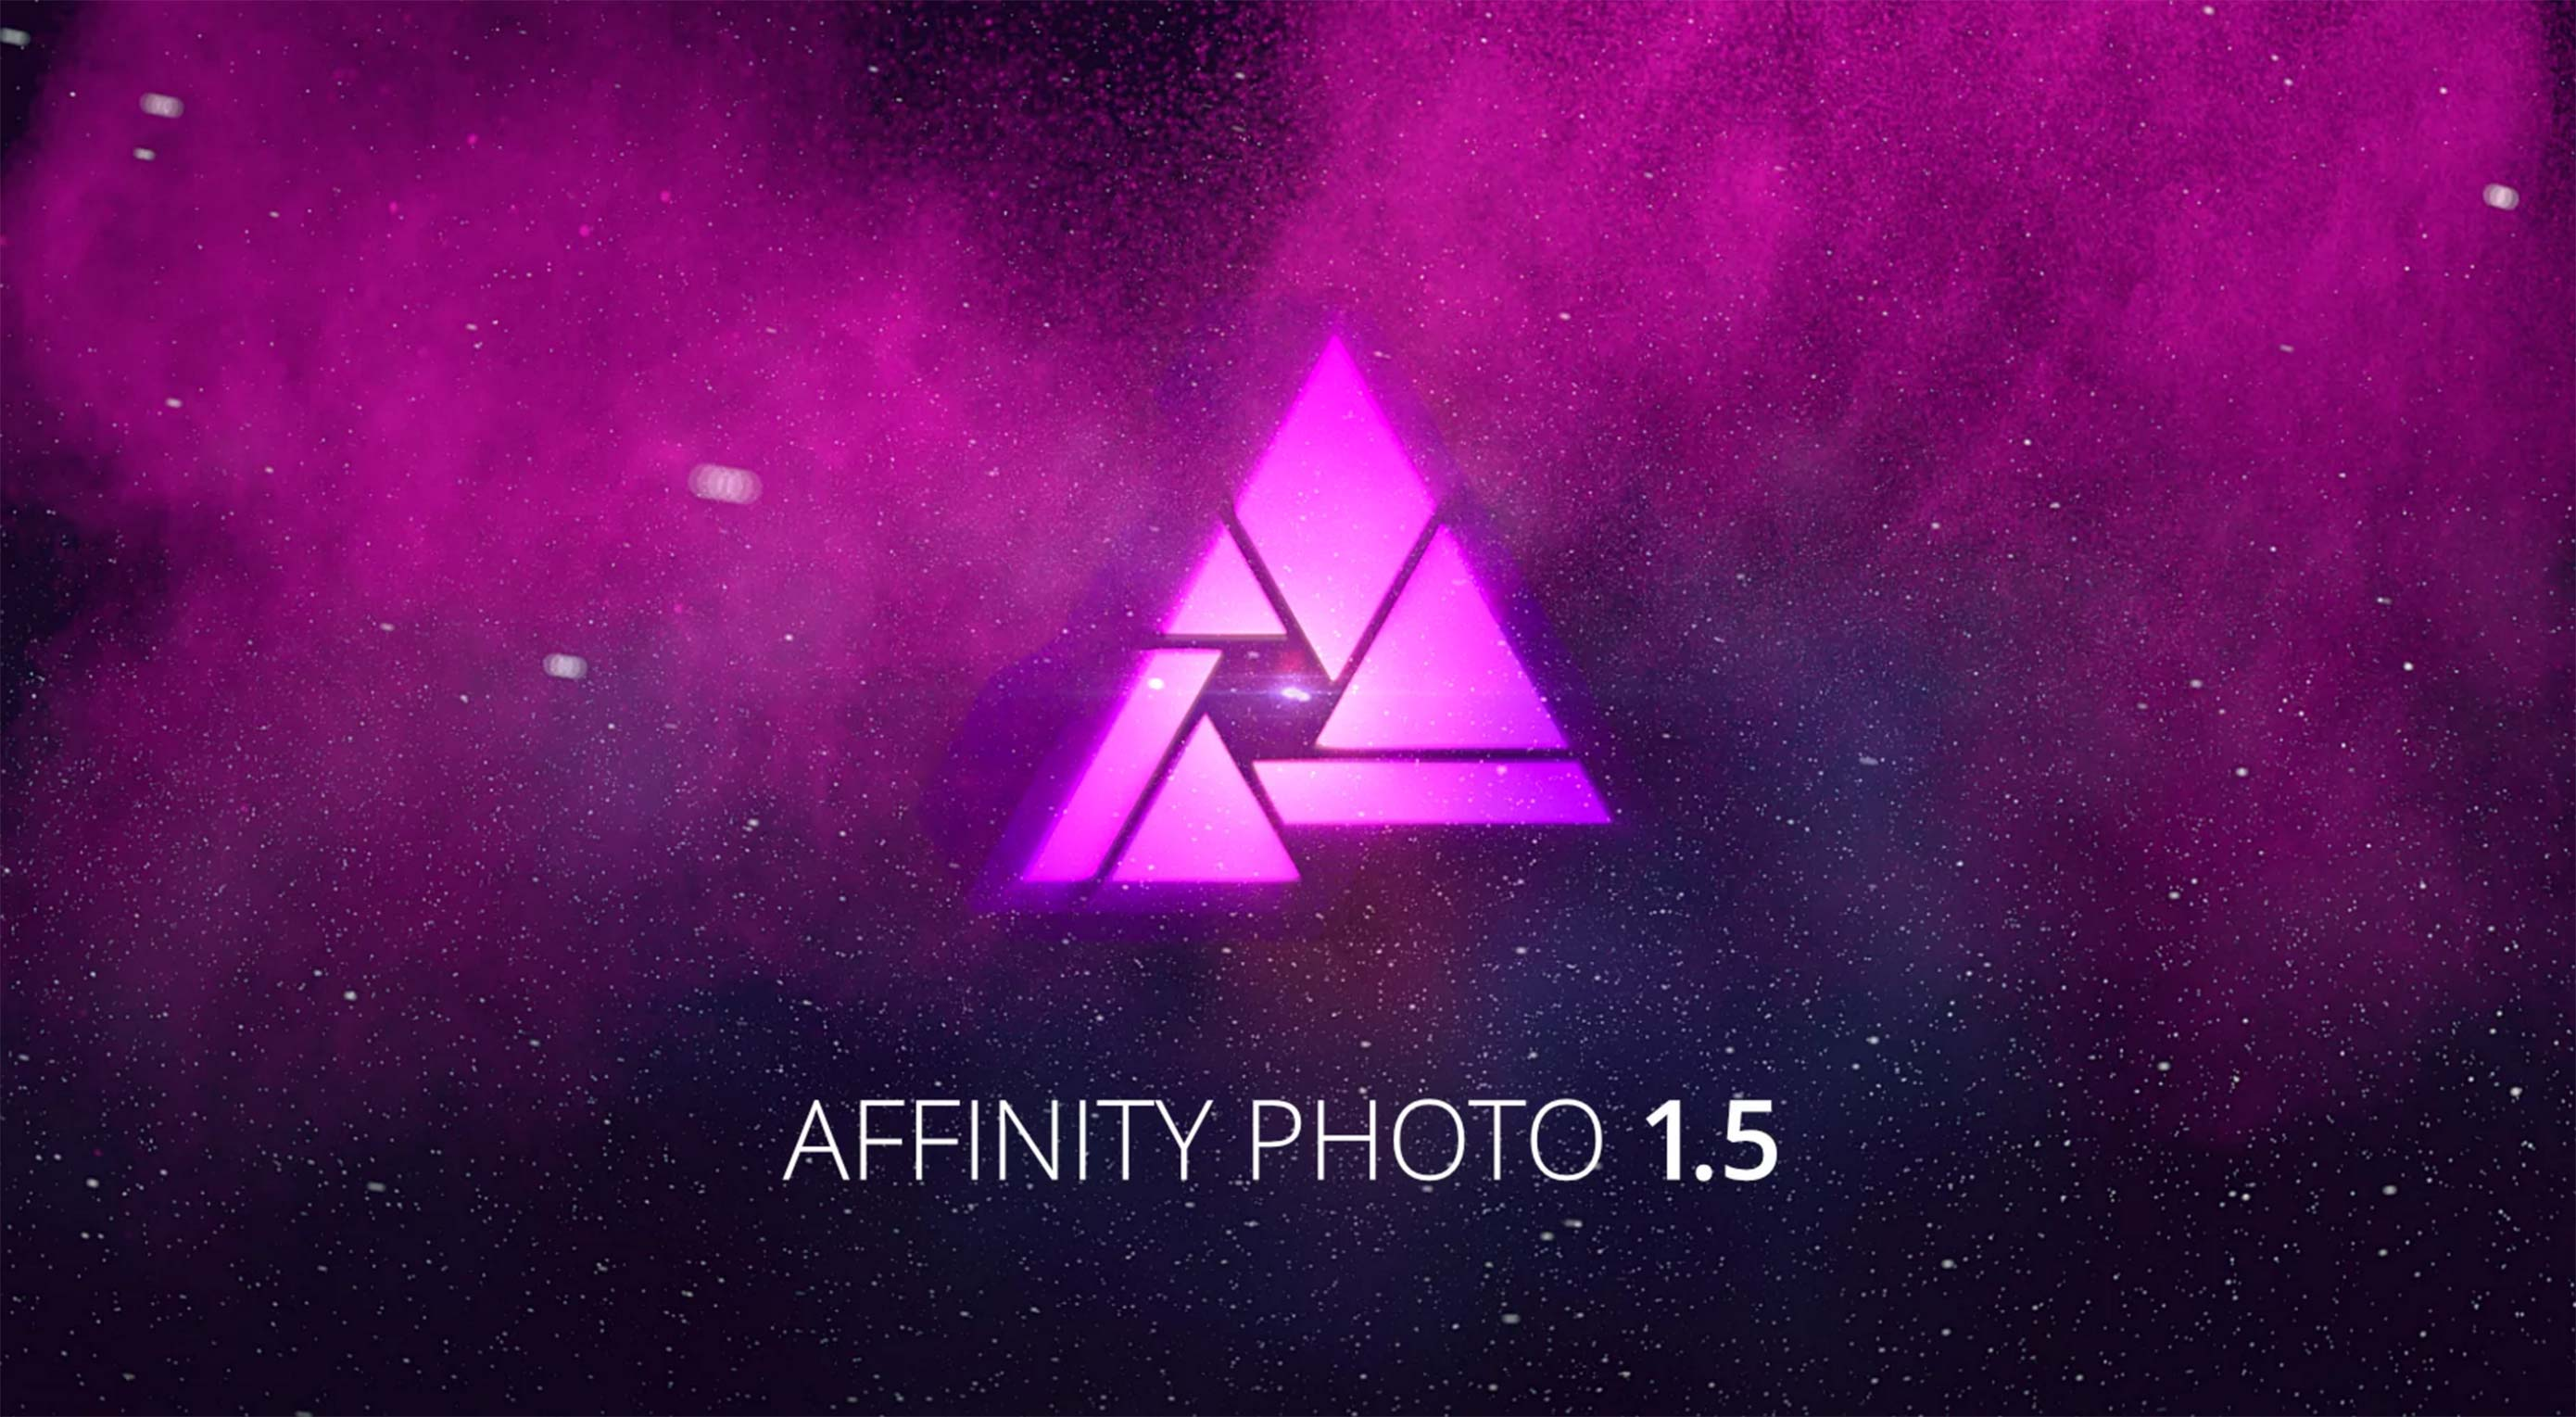 Affinity Photo 1.5 released, packed with new features and Windows support